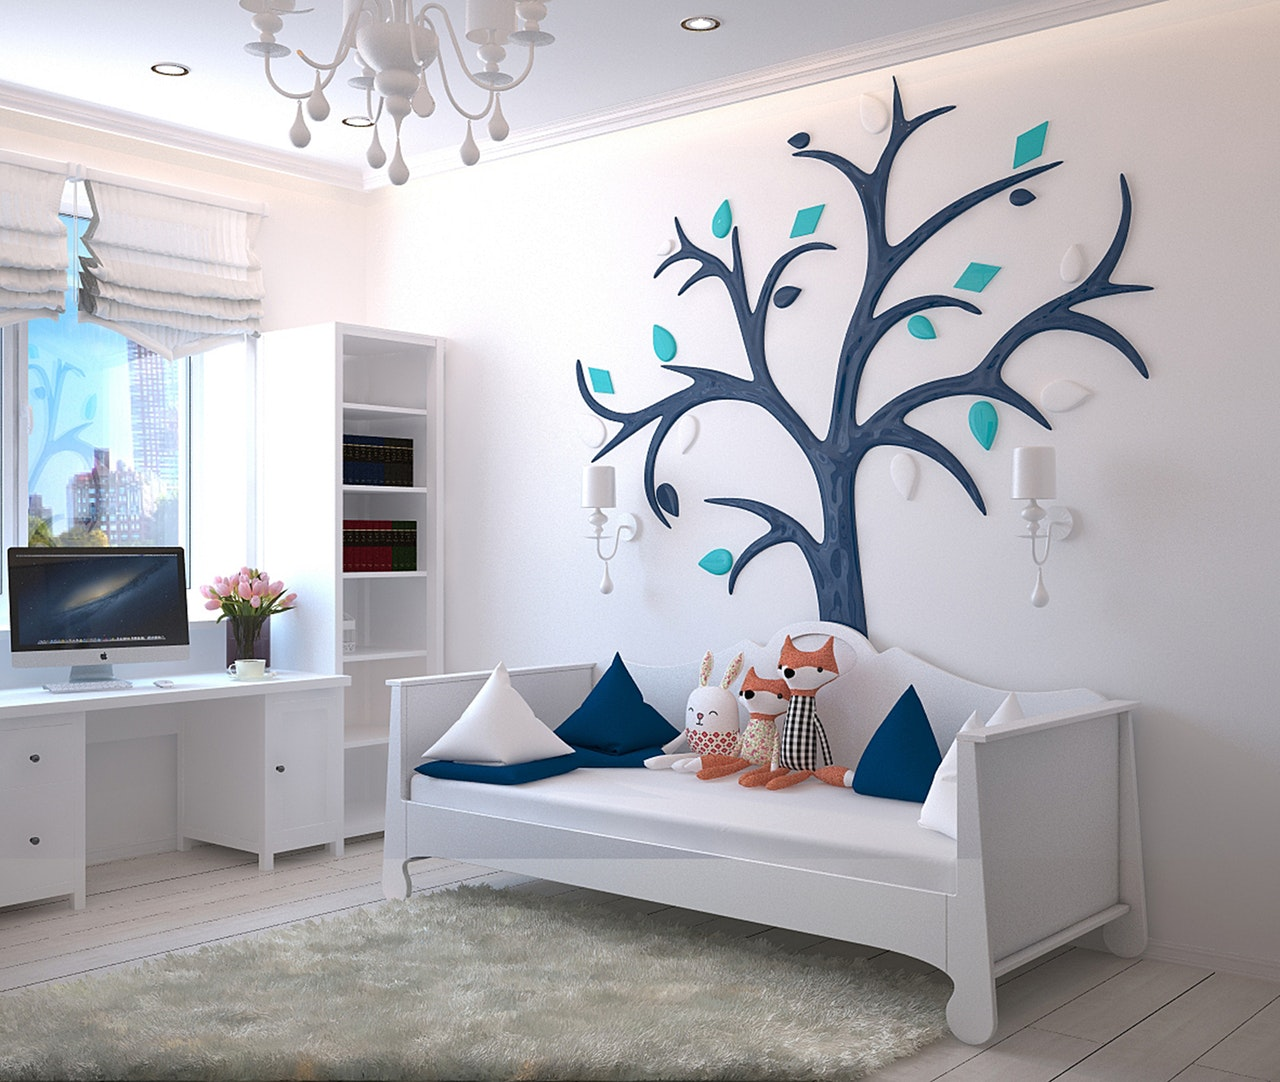 Personalized Wall Treatments  The tree could make a great photo collage